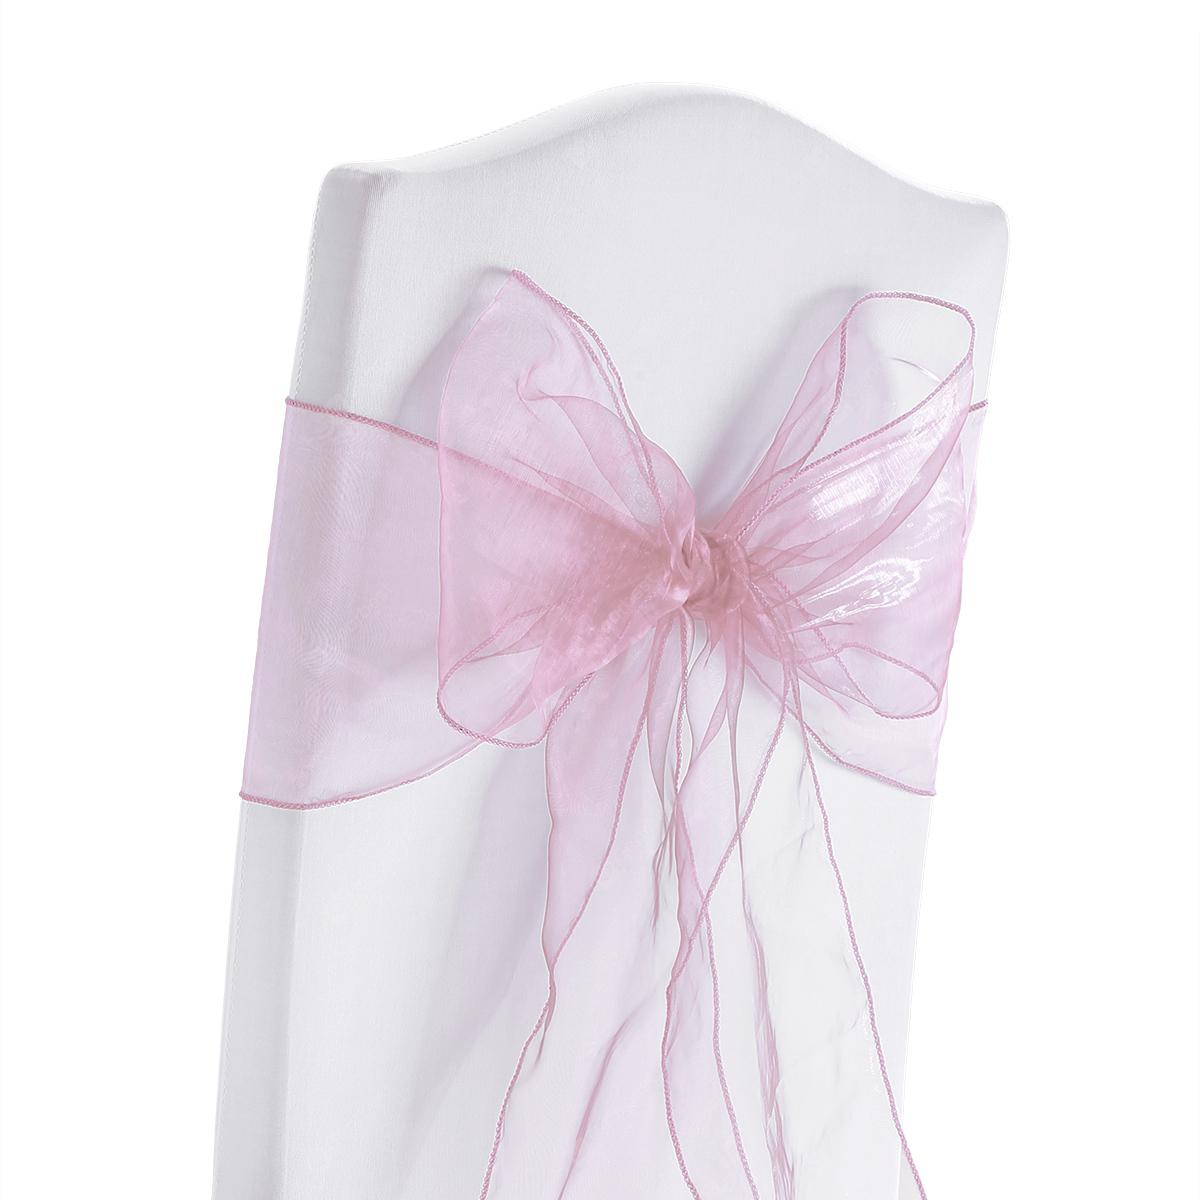 Organza Sashes Chair Cover Bows Sash Wider Sash Fuller Bows Wedding Party Birthday Decoration